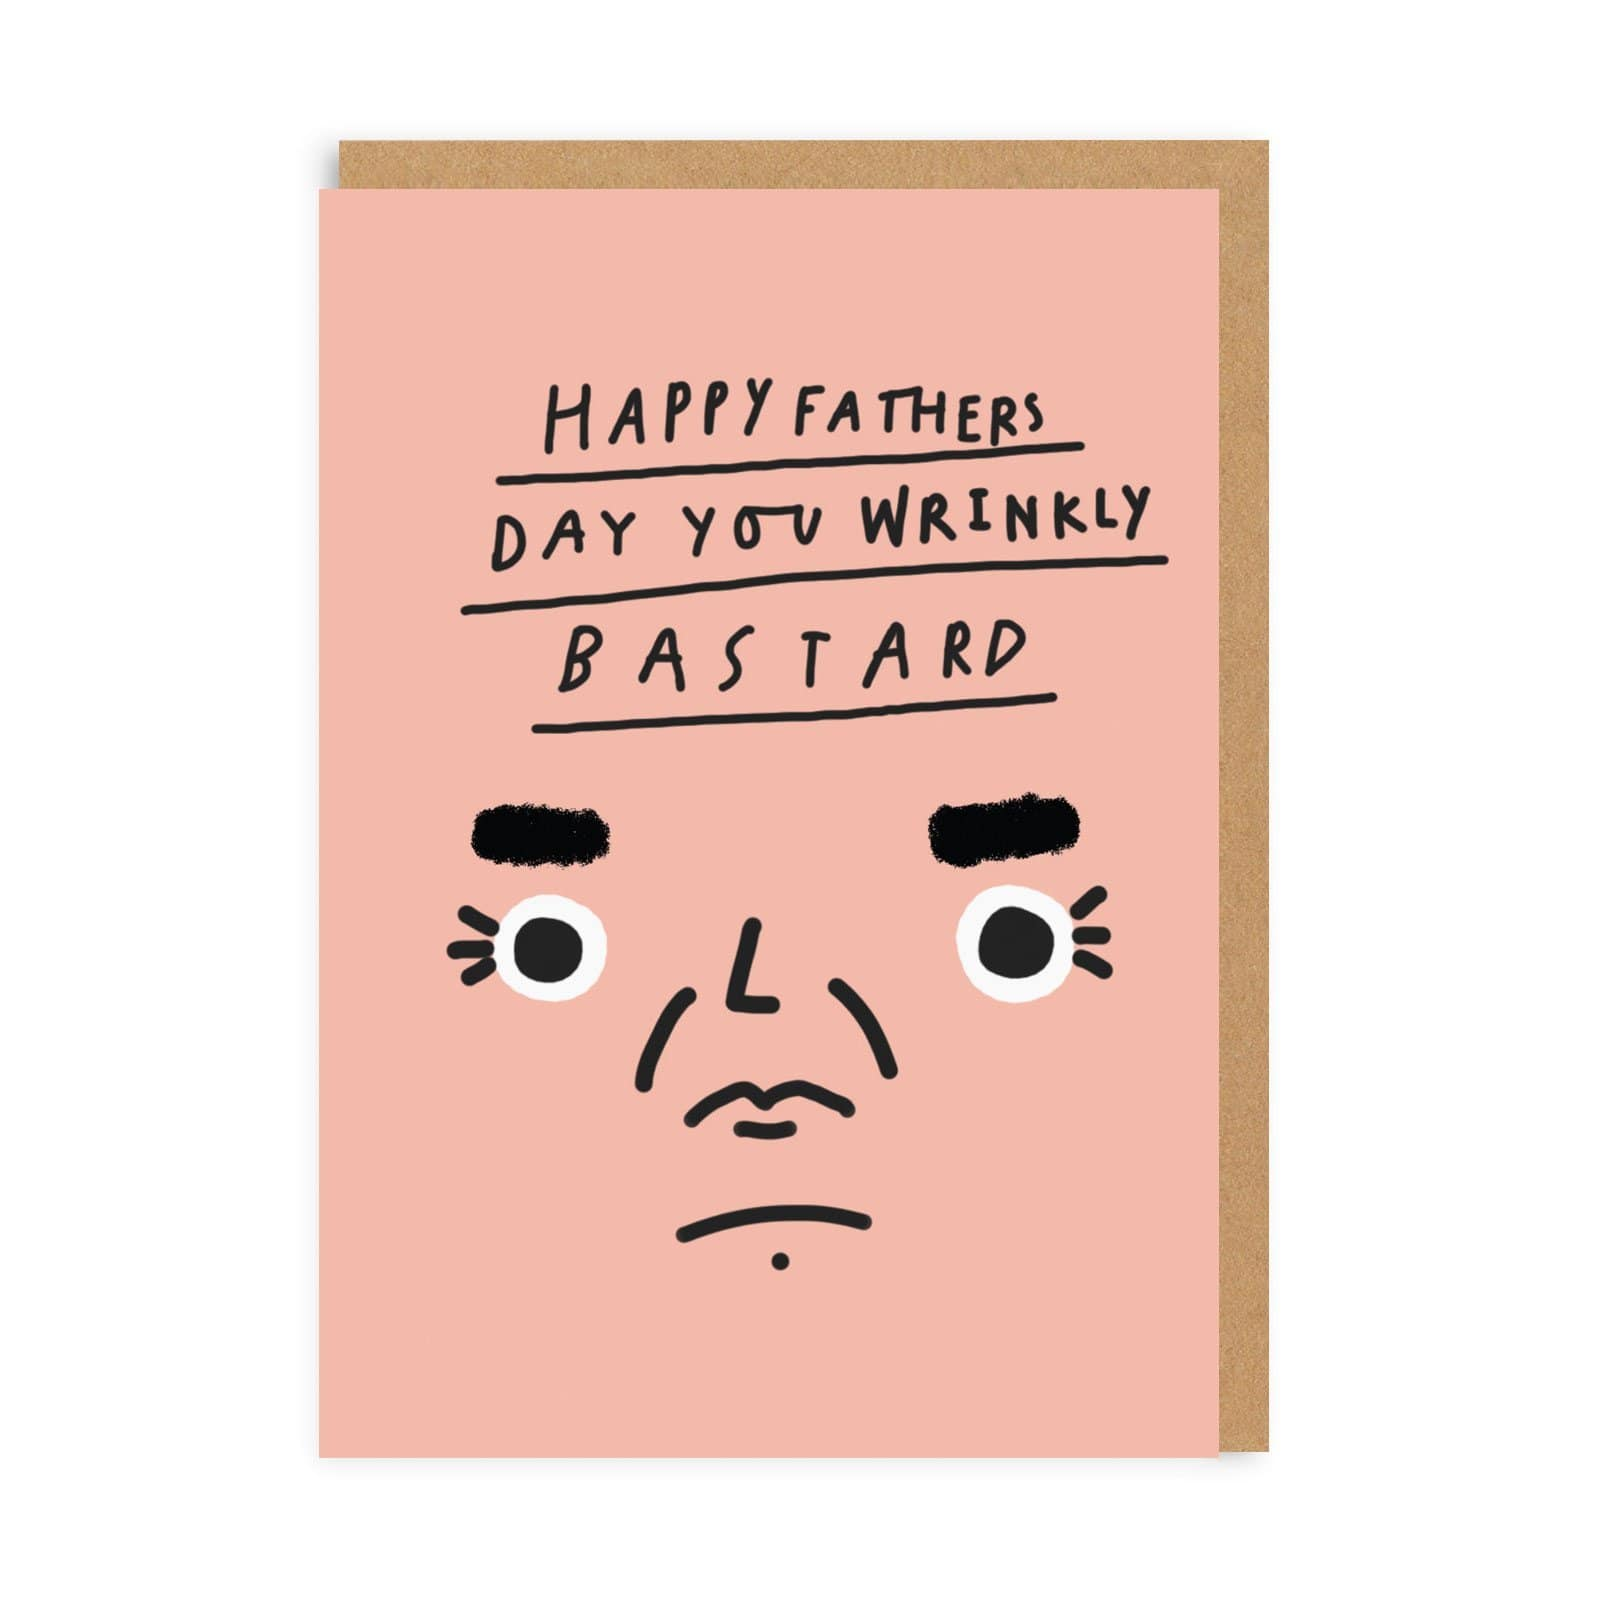 Dad Wrinkly Father's Day Greeting Card